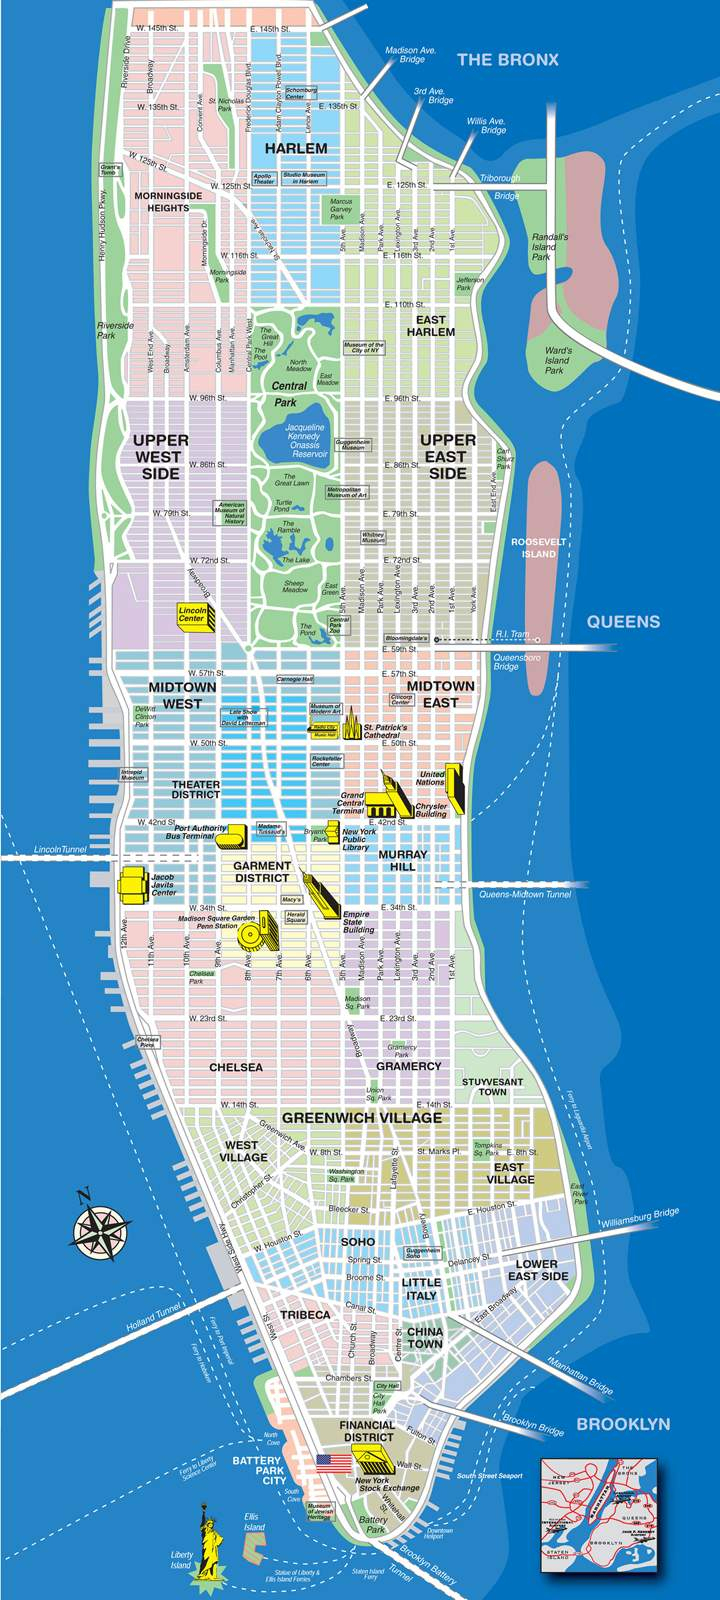 Large Manhattan Maps For Free Download And Print | High-Resolution - Printable Tourist Map Of Manhattan